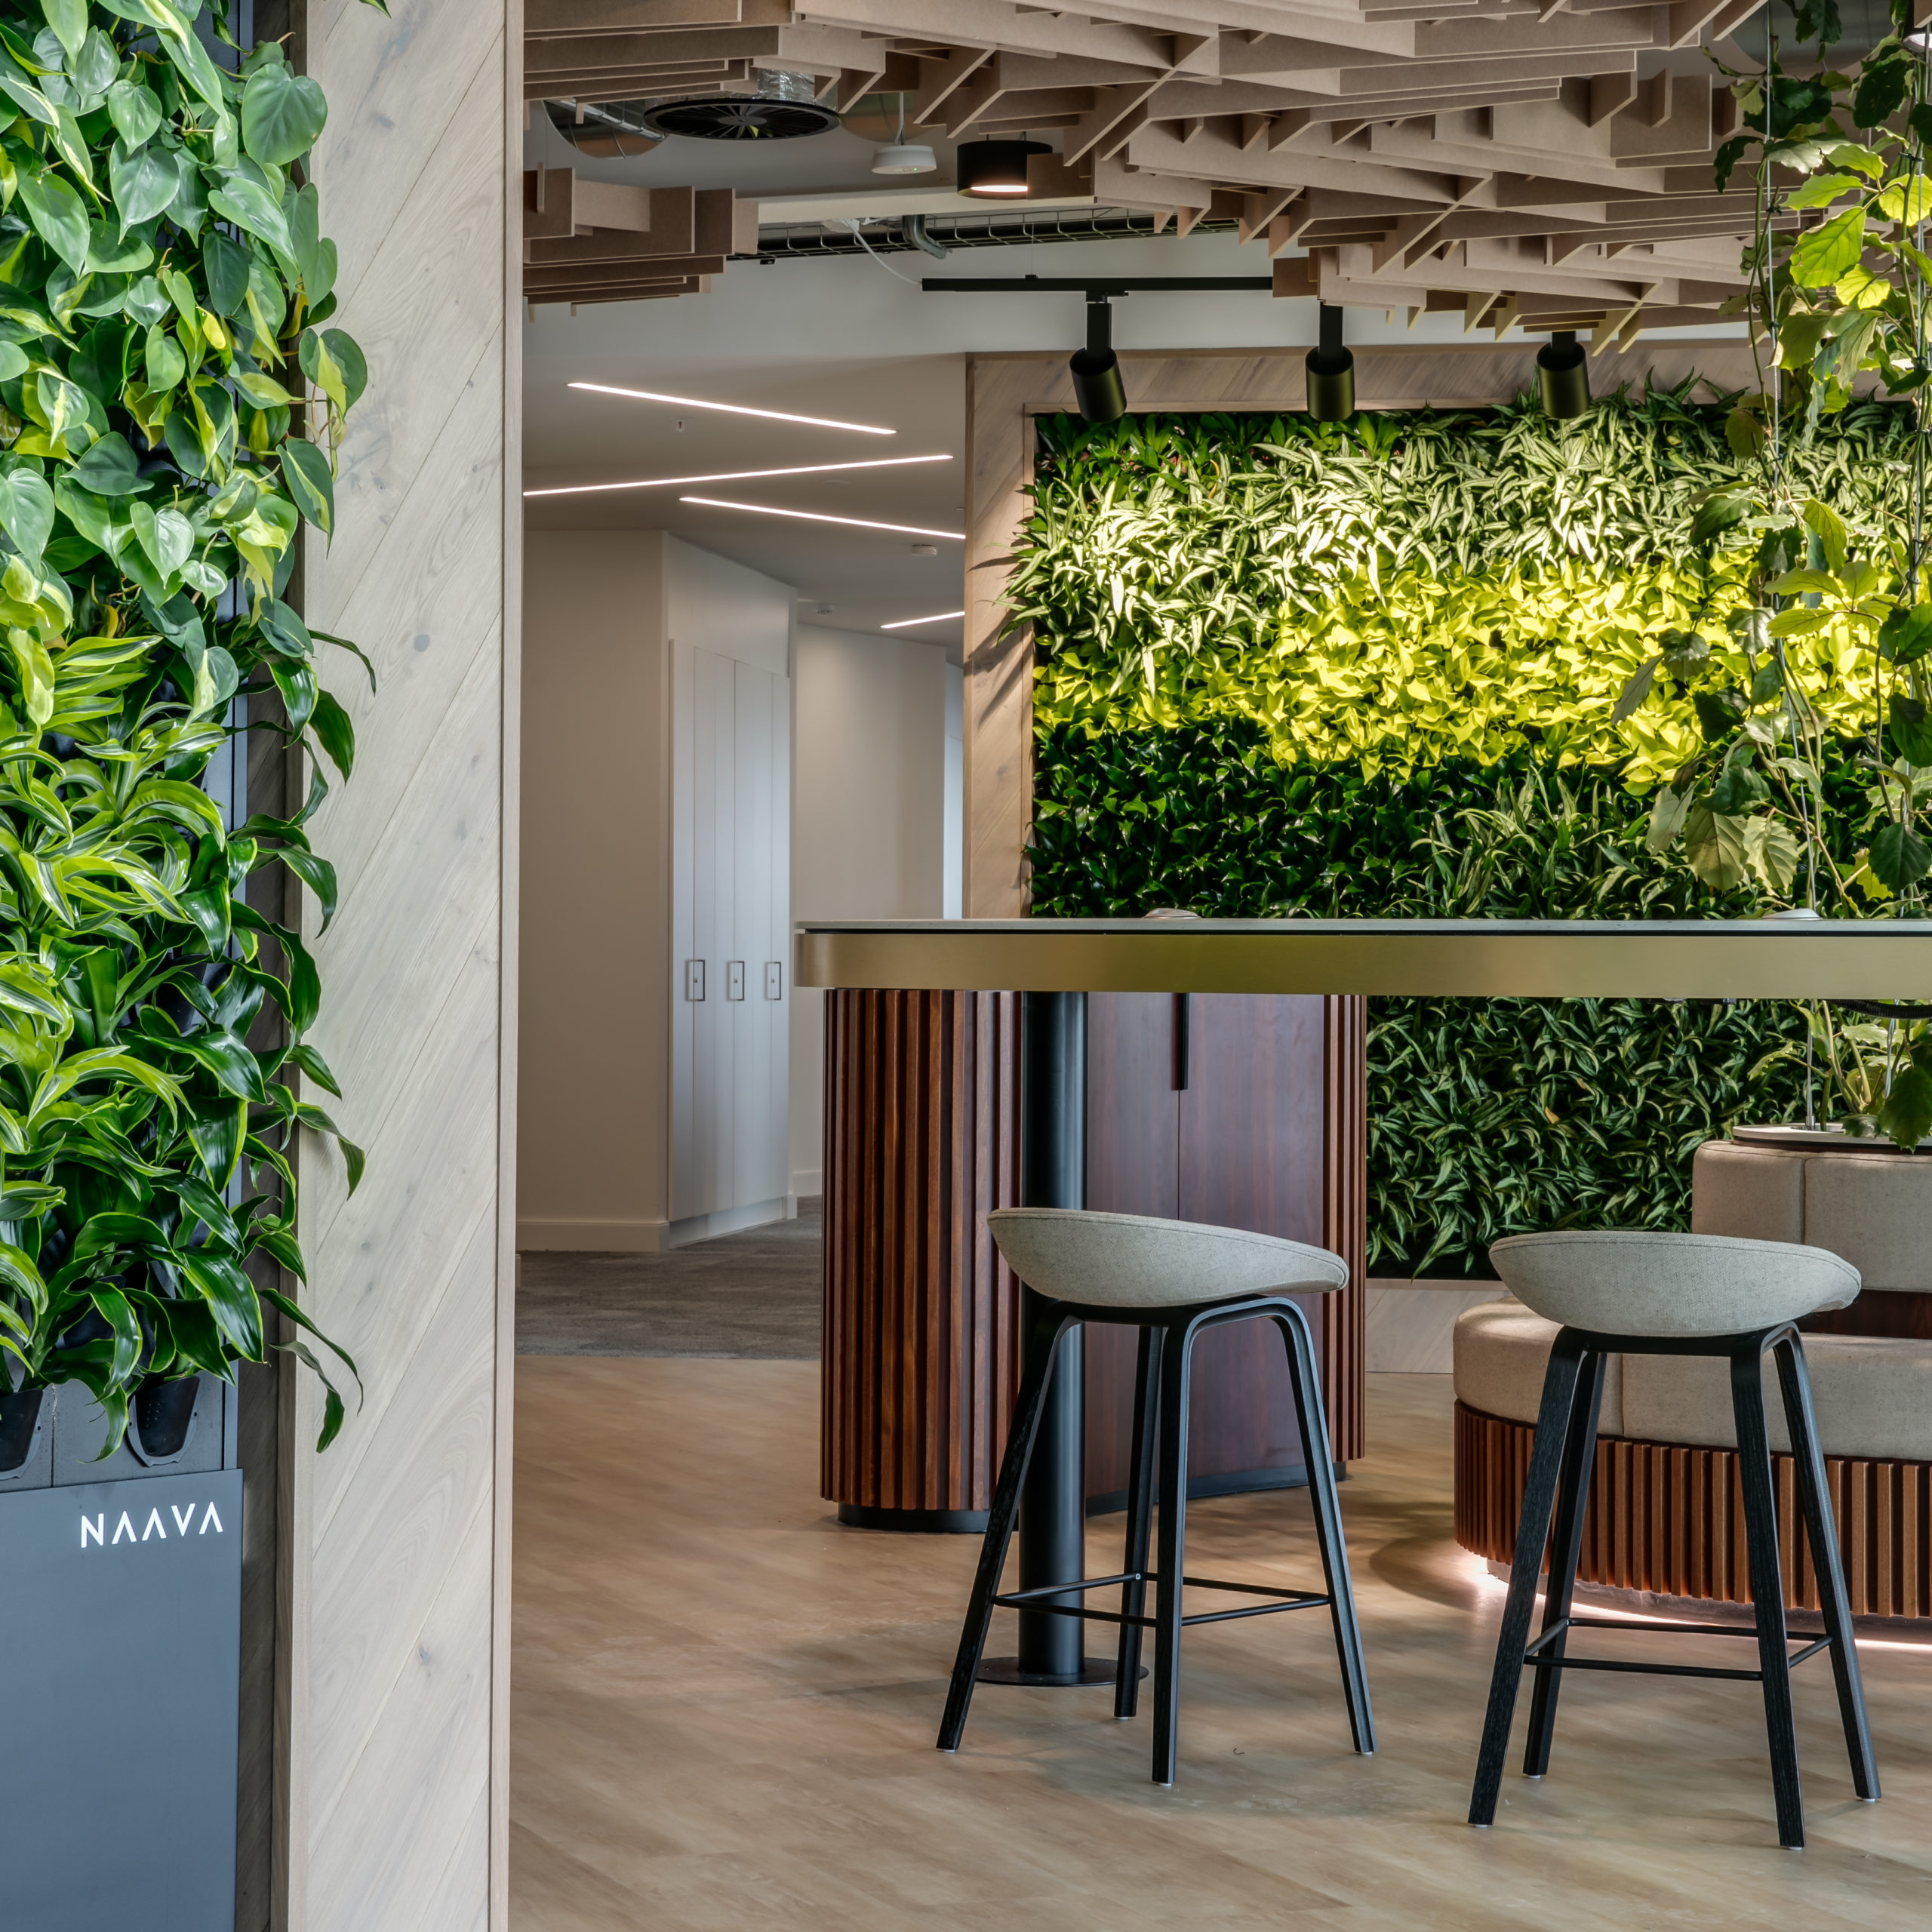 Biophilia is central to the space we designed for JLL's office in Manchester, UK